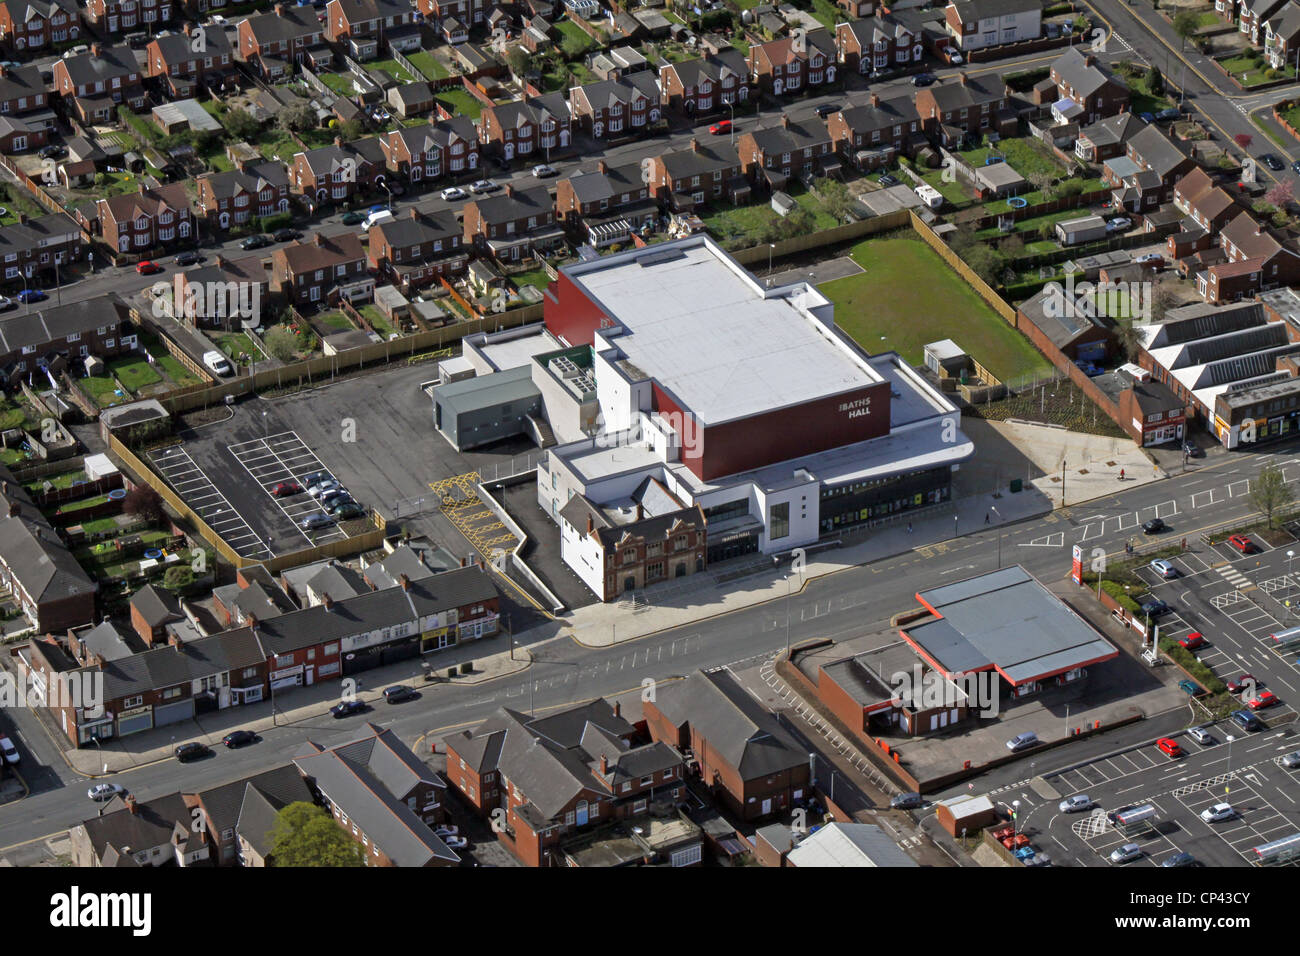 Aerial view of The Baths Hall Entertainment Venue, Scunthorpe - Stock Image